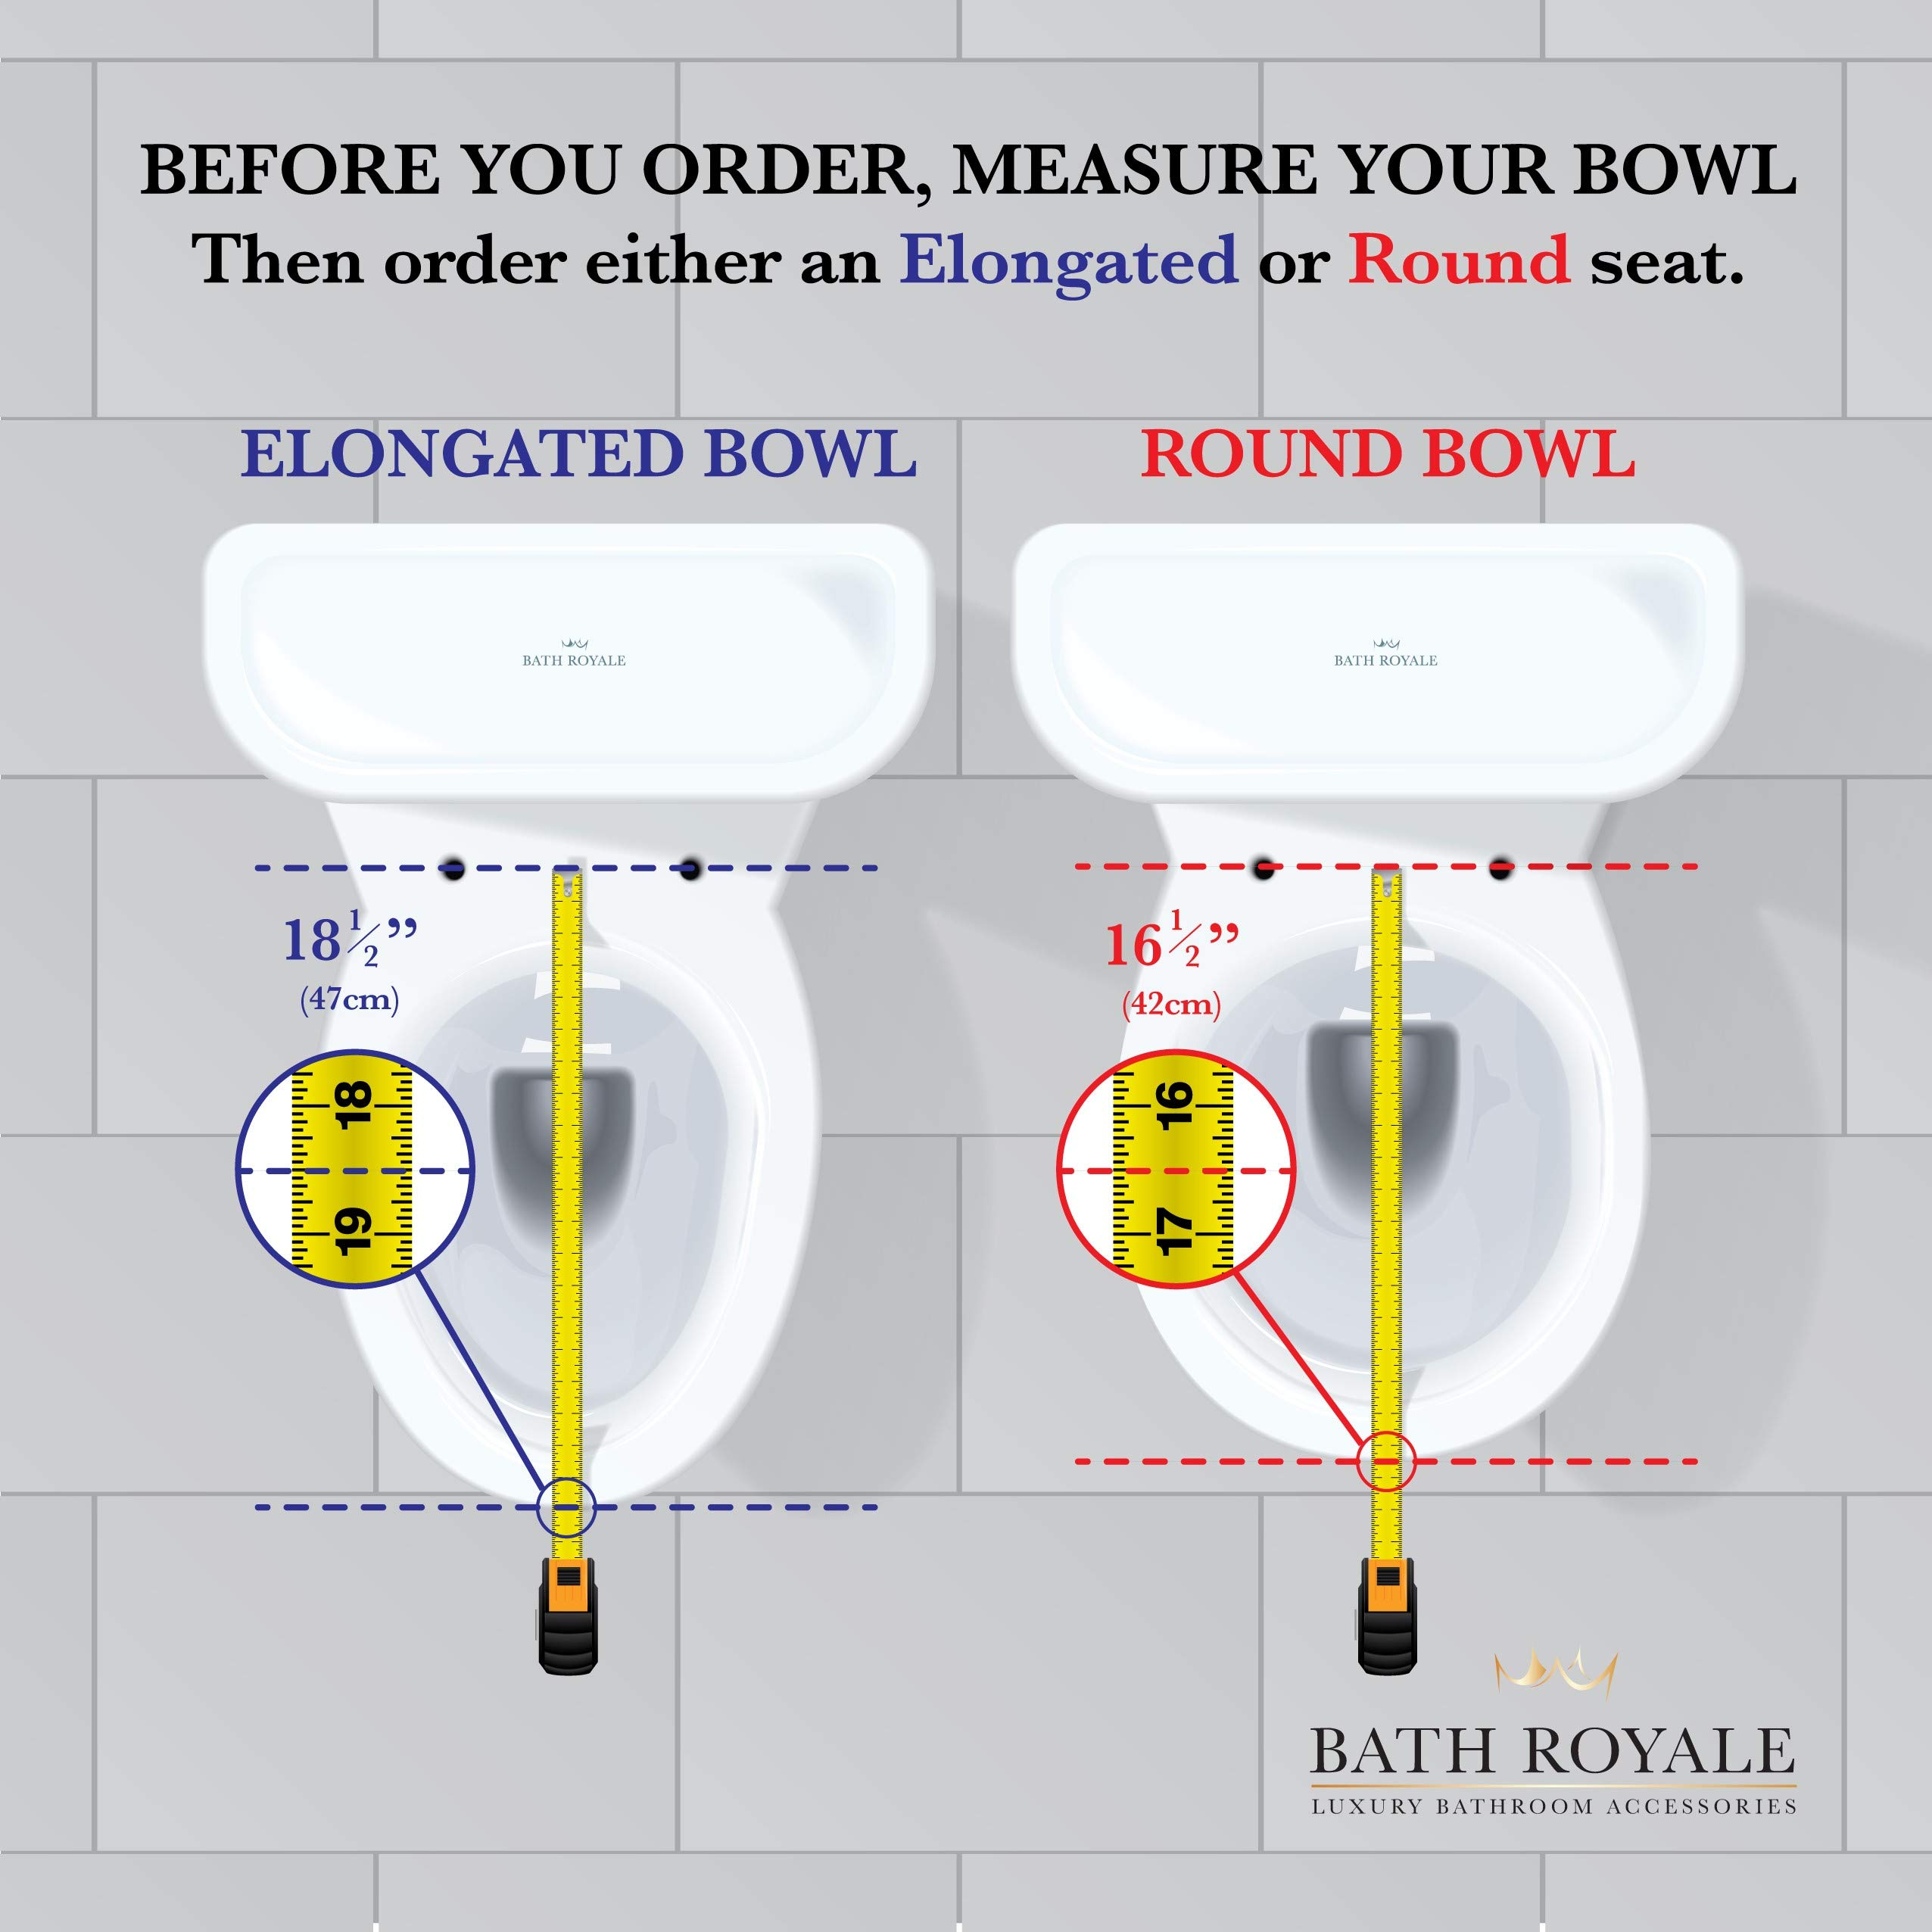 Galleon Bath Royale Br606 00 Premium Elongated Toilet